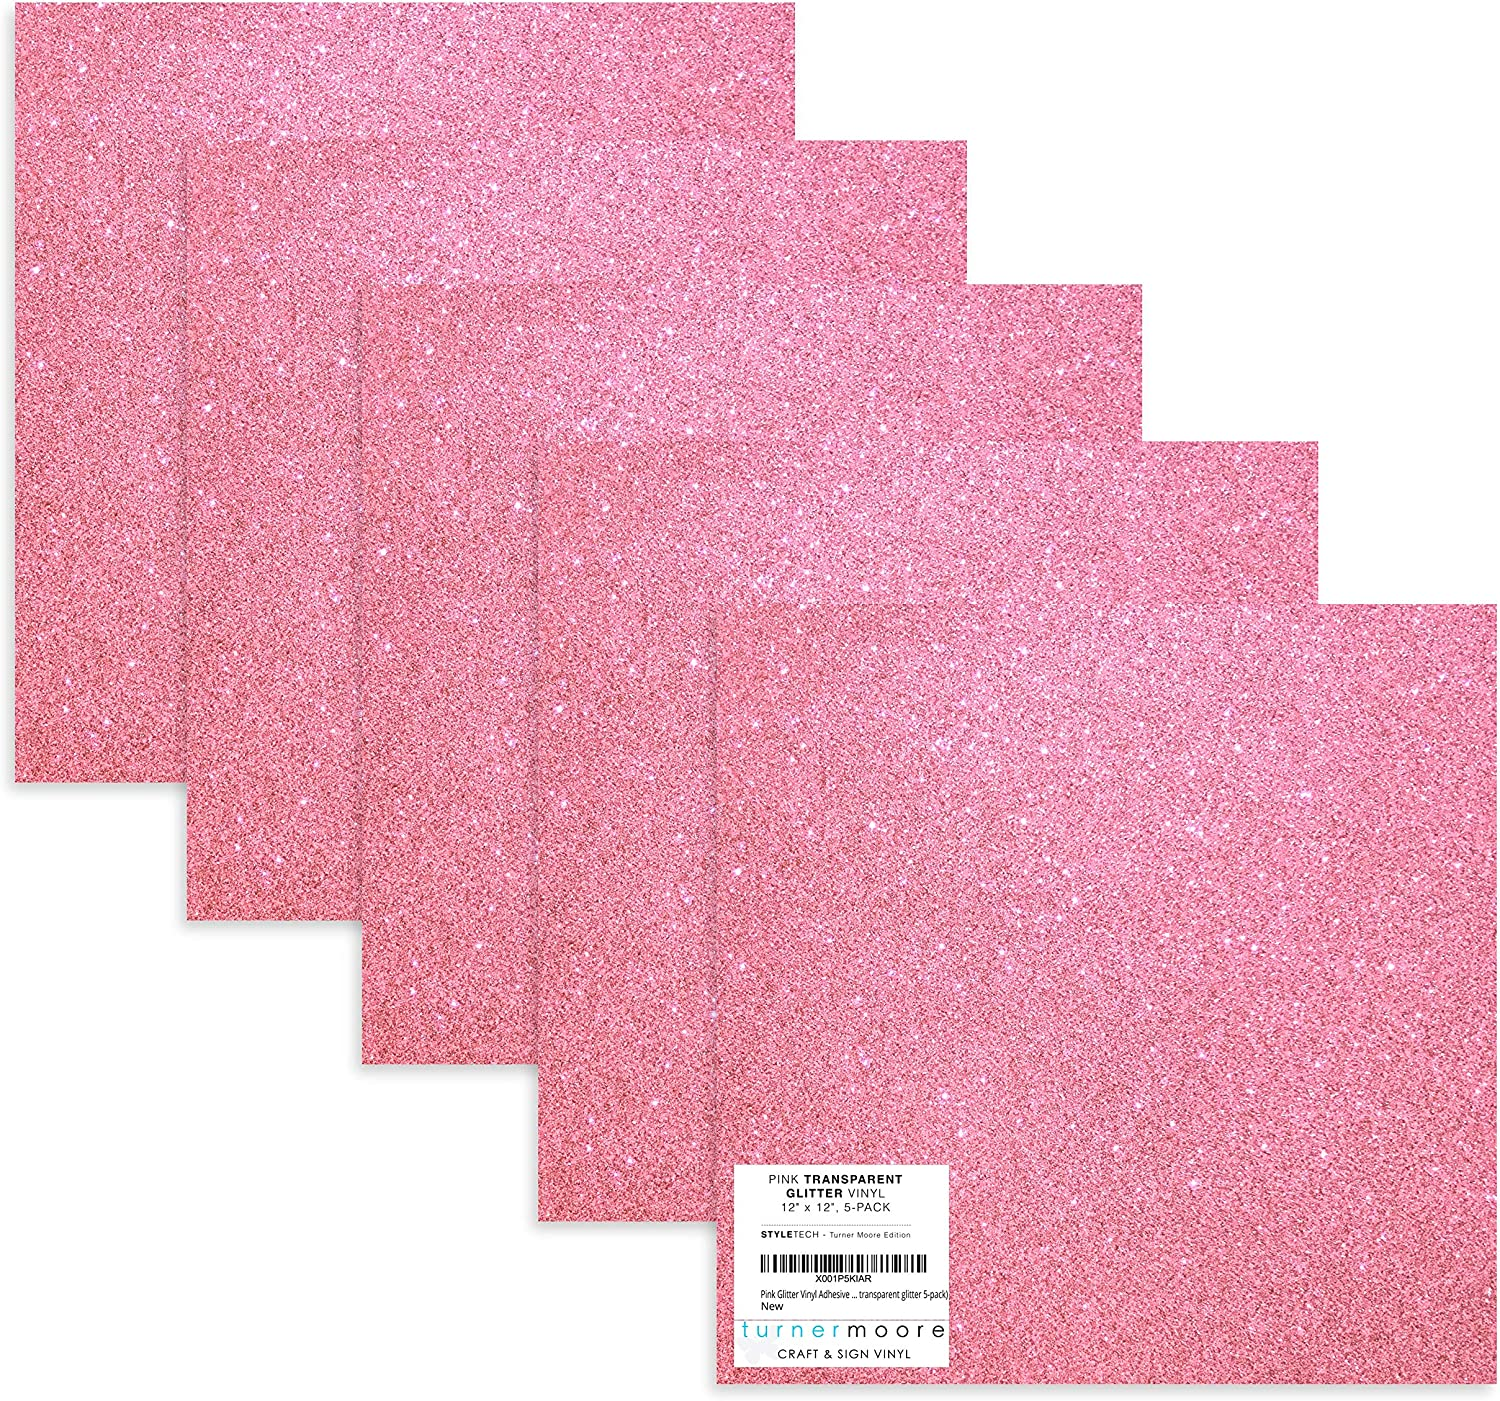 Stickers 12 x 12 Transparent Glitter Vinyl Sheets for Maker Silhouette Cameo Rosy Pink Glitter Vinyl Adhesive and Crafts by StyleTech x Turner Moore Edition Explore Rose Glitter Vinyl, 5-pk